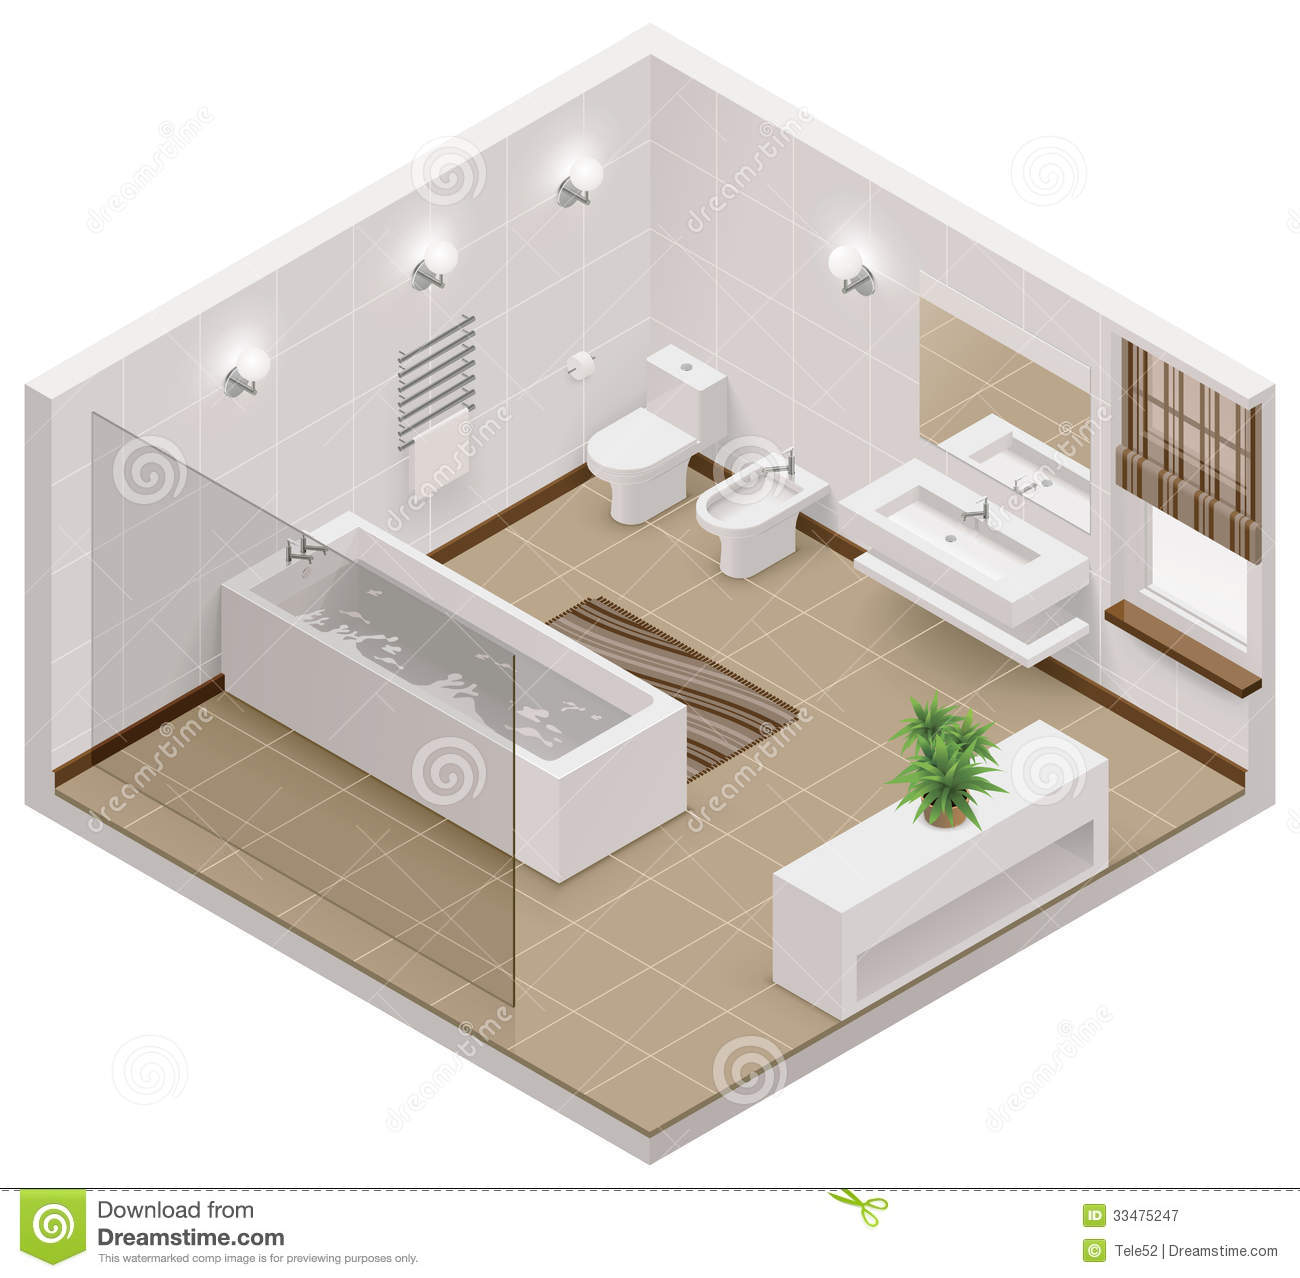 Homestyler Autodesk Vector Isometric Bathroom Icon Royalty Free Stock